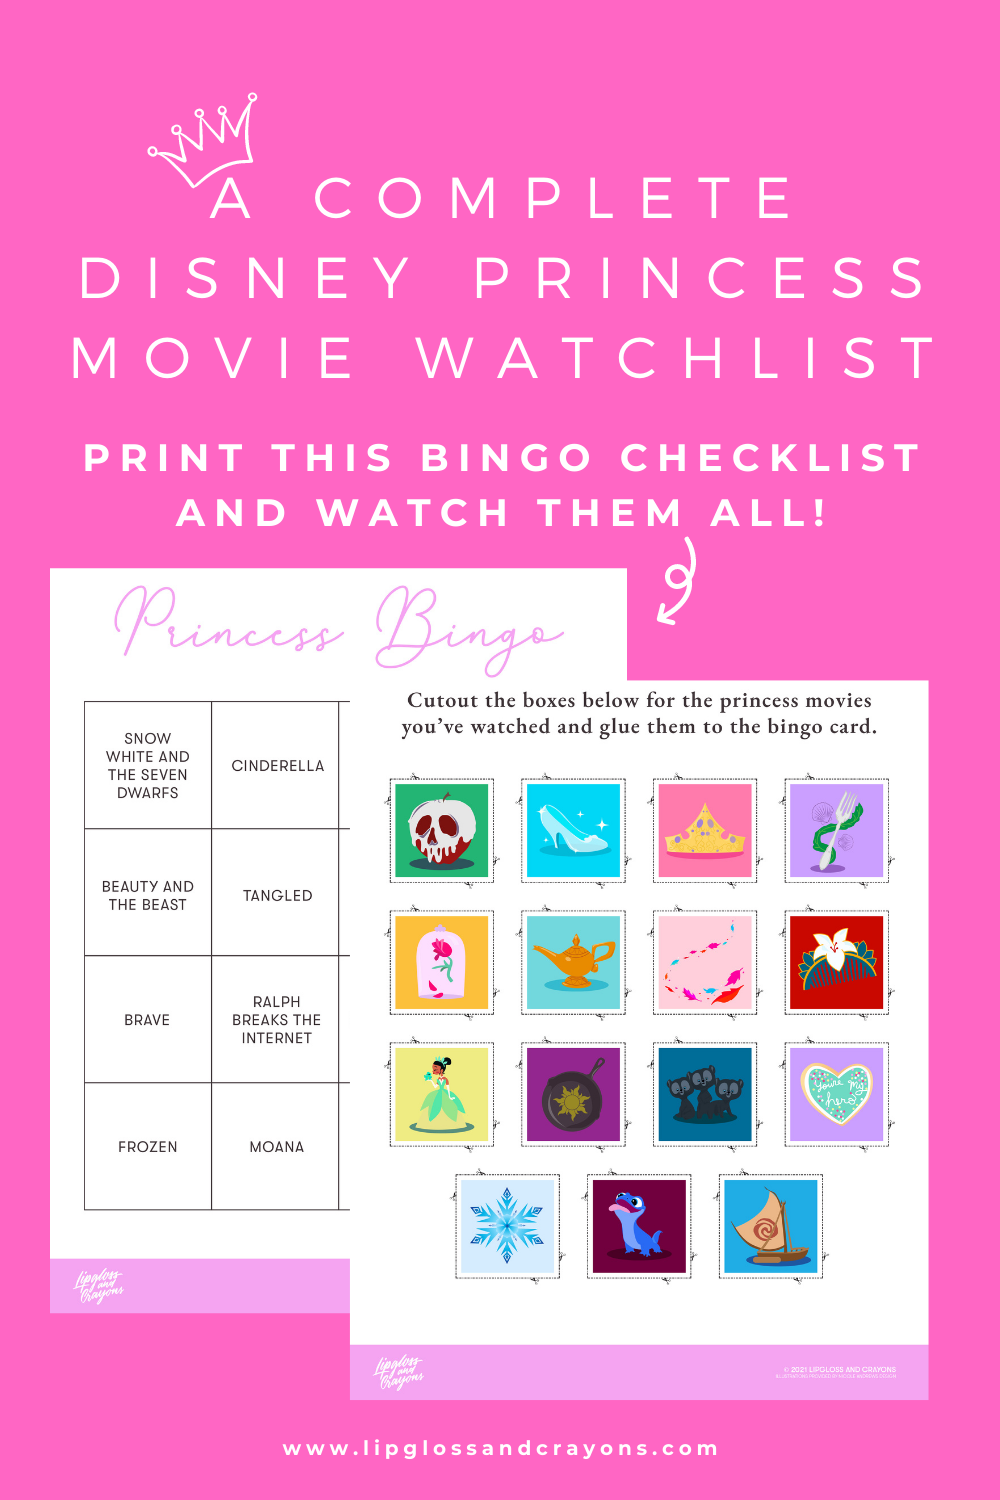 Got a Disney Princess Movies fan in your house? This is a complete Disney Princess Films watchlist, and where to find each of the films.